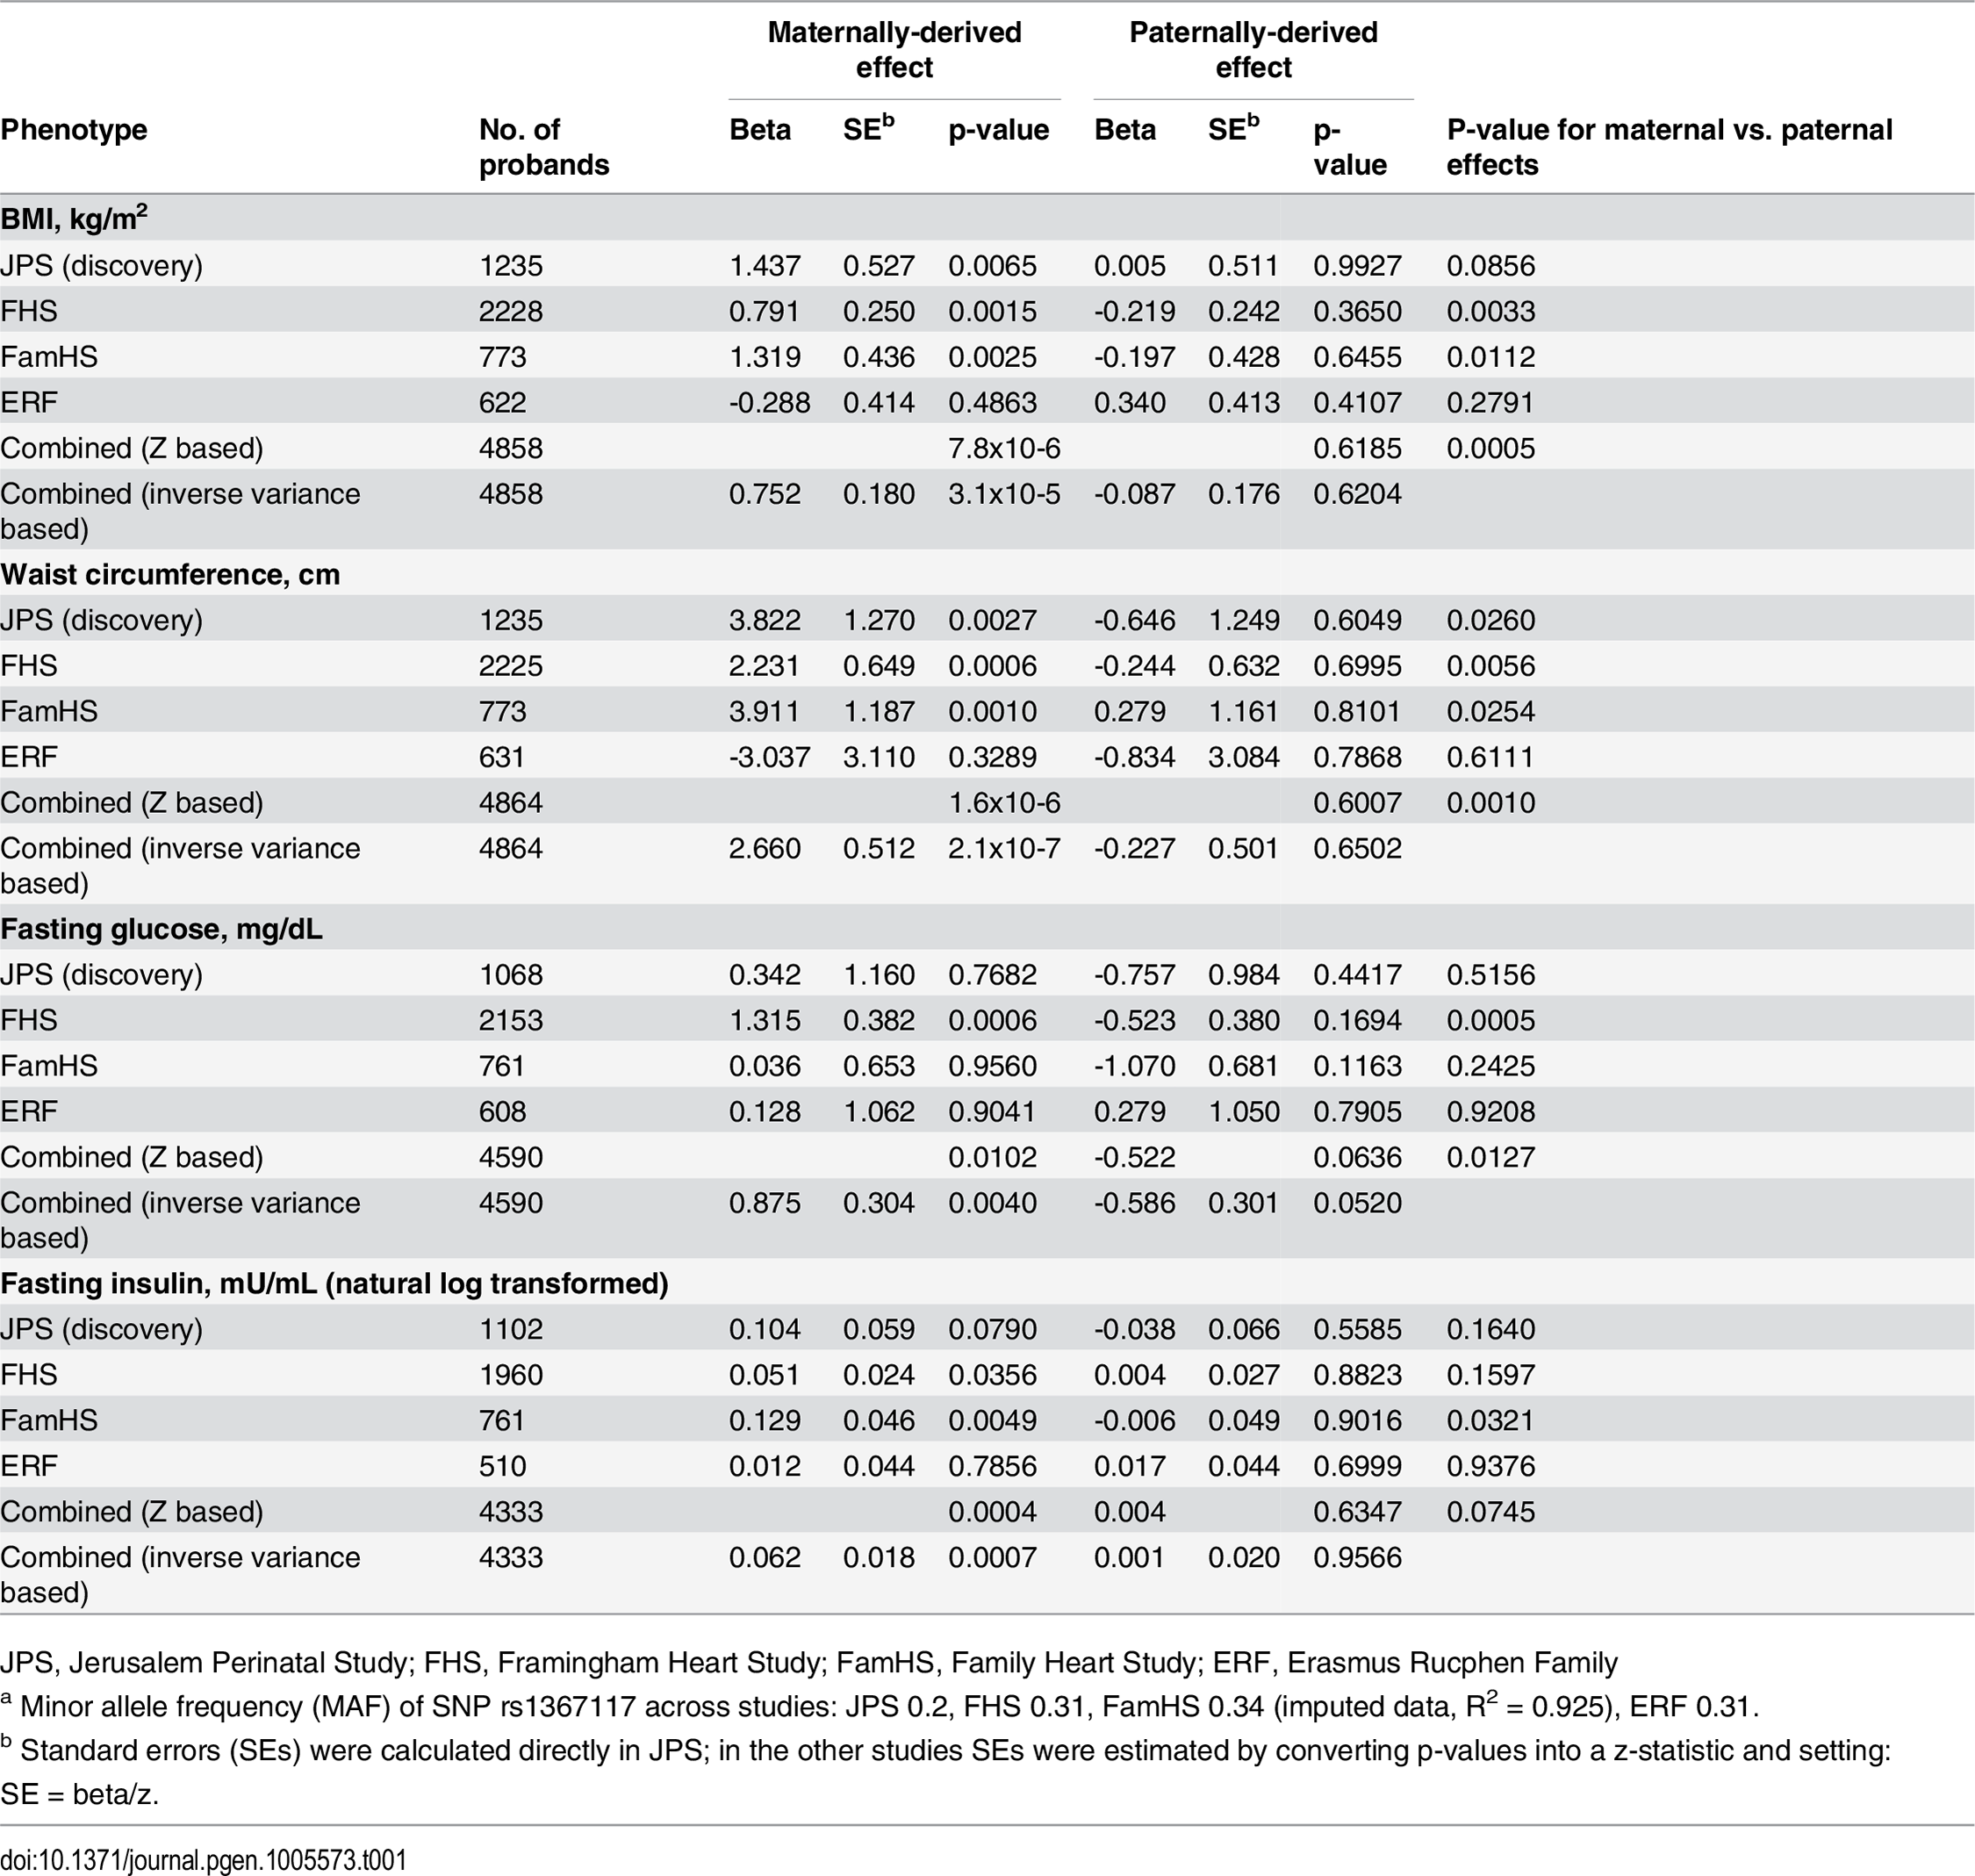 Parent-of-origin effects of <i>APOB</i> SNP rs1367117<em class=&quot;ref&quot;><sup>a</sup></em> on adiposity and glycemic traits.